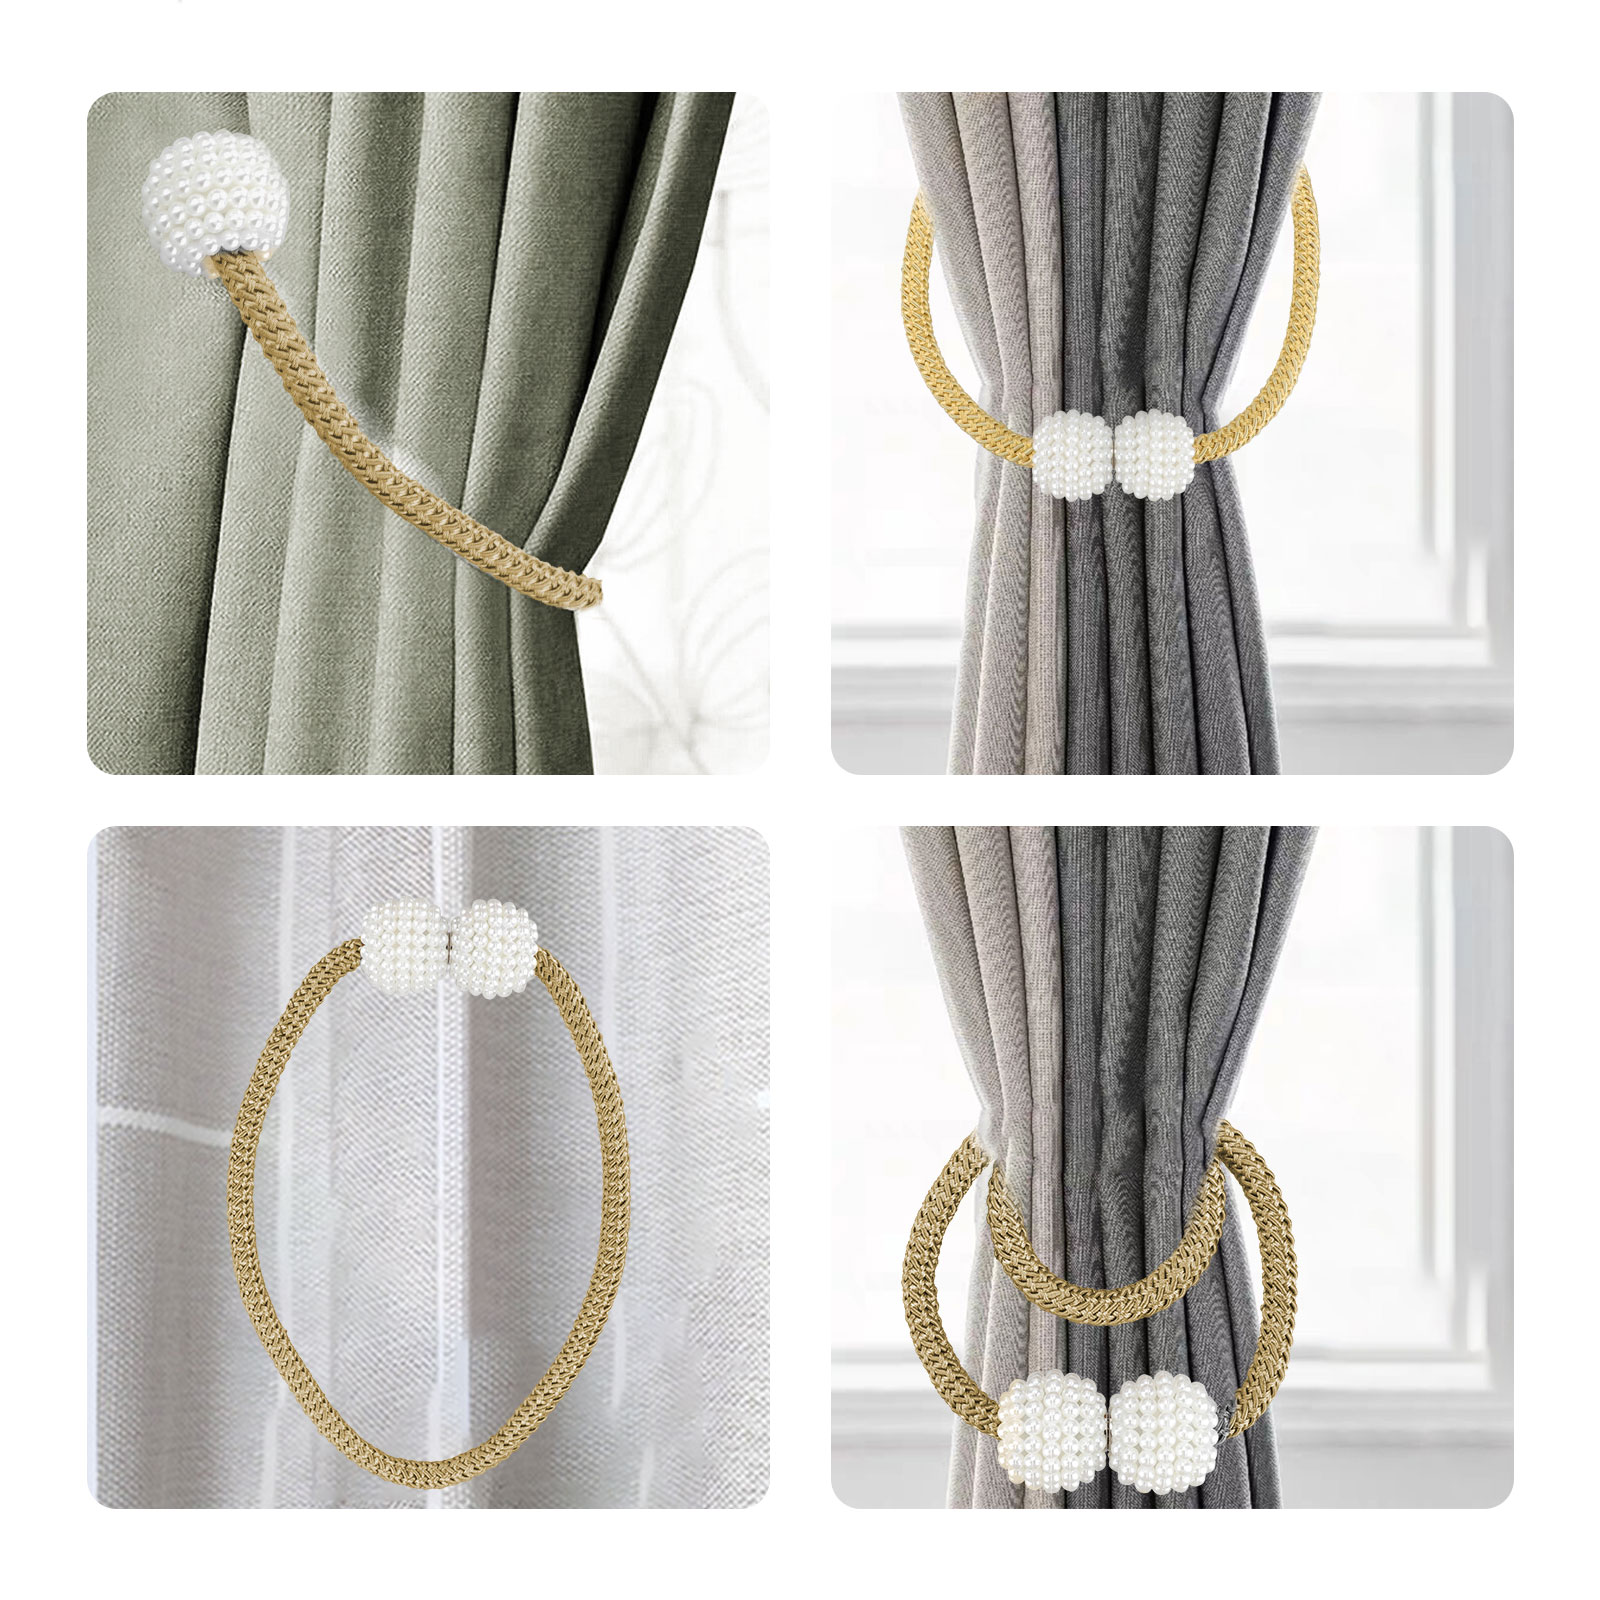 8 6 4 2pcs magnetic curtain tiebacks modern pearl magnetic tie backs woven texture rope holdbacks holder 18 5 inch decorative magnet window hold